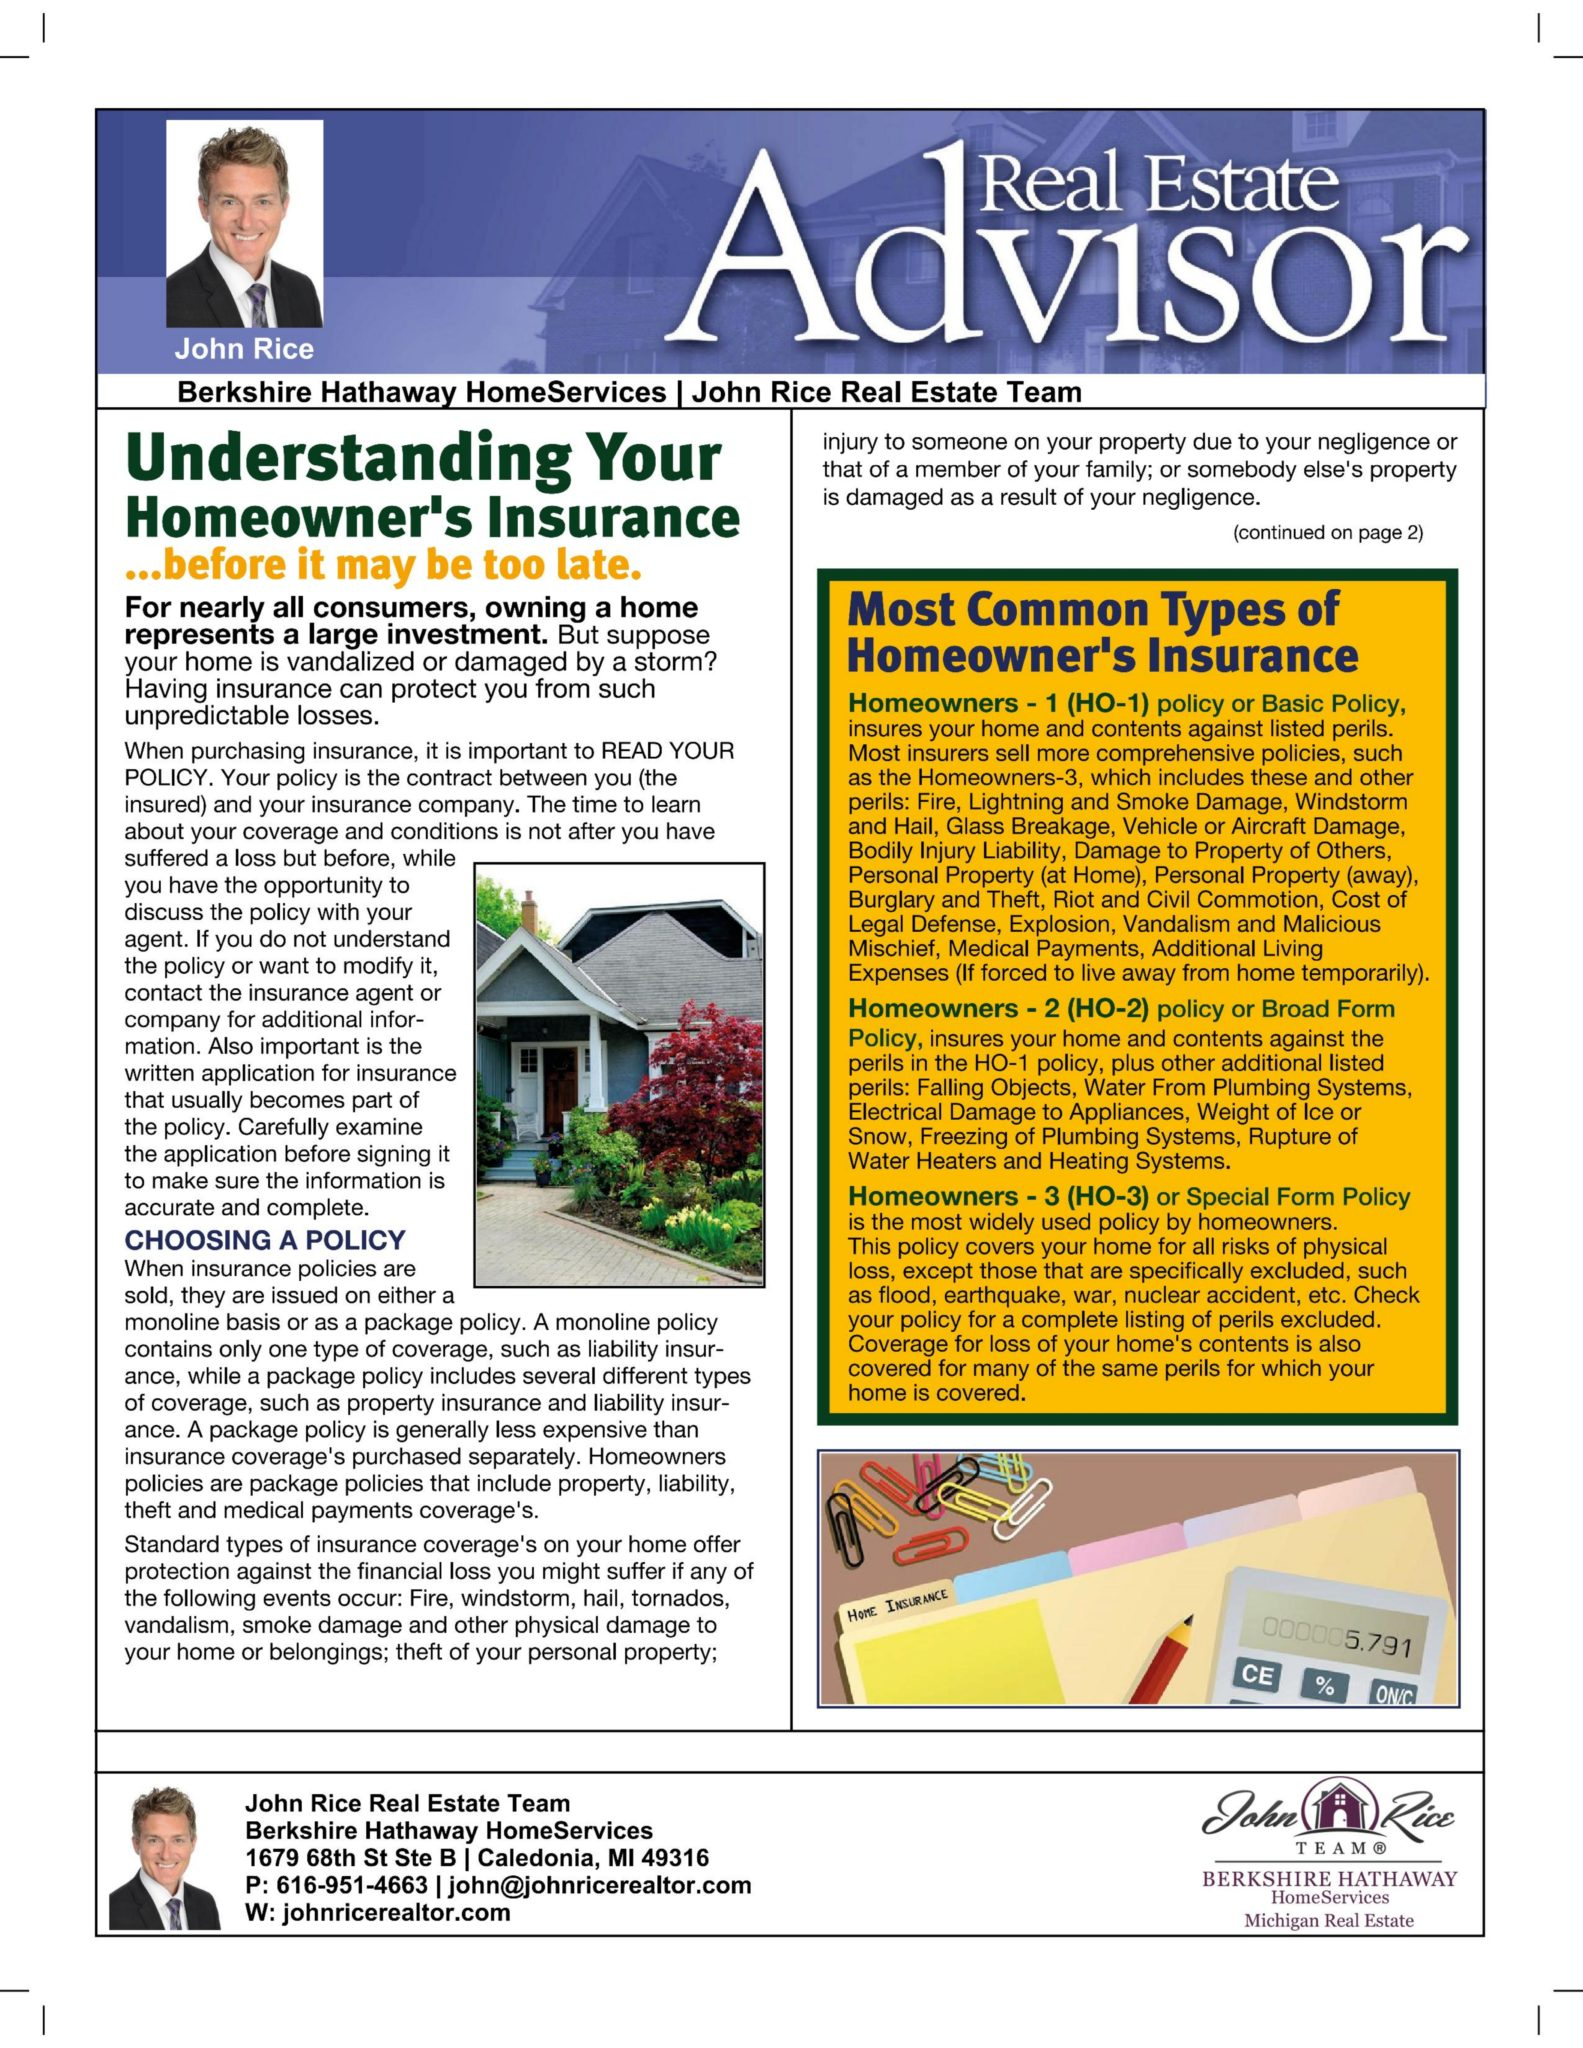 Homest Home Insurance What S It All About Real Estate